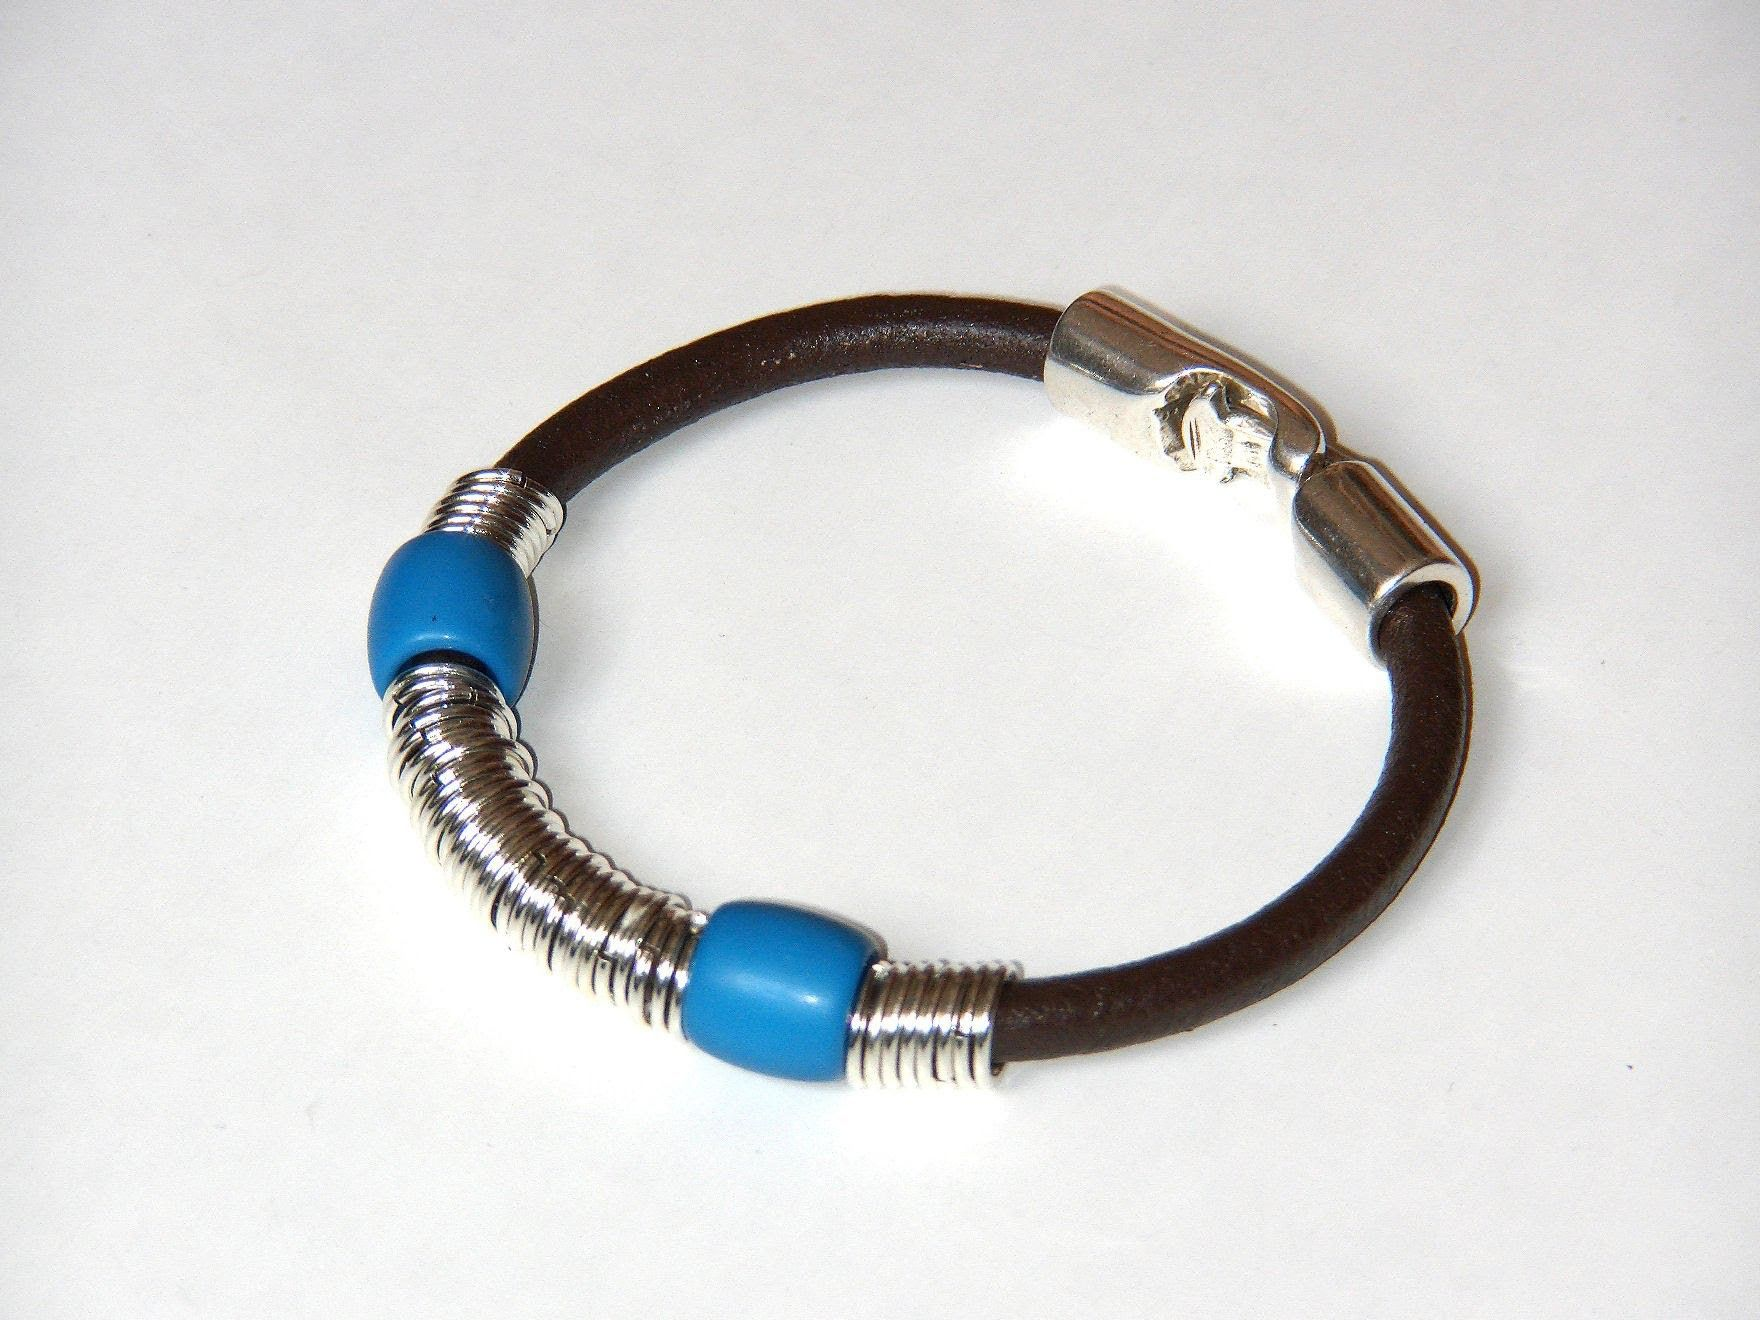 Beading Ideas Leather Bracelet Using Rings As Ornament